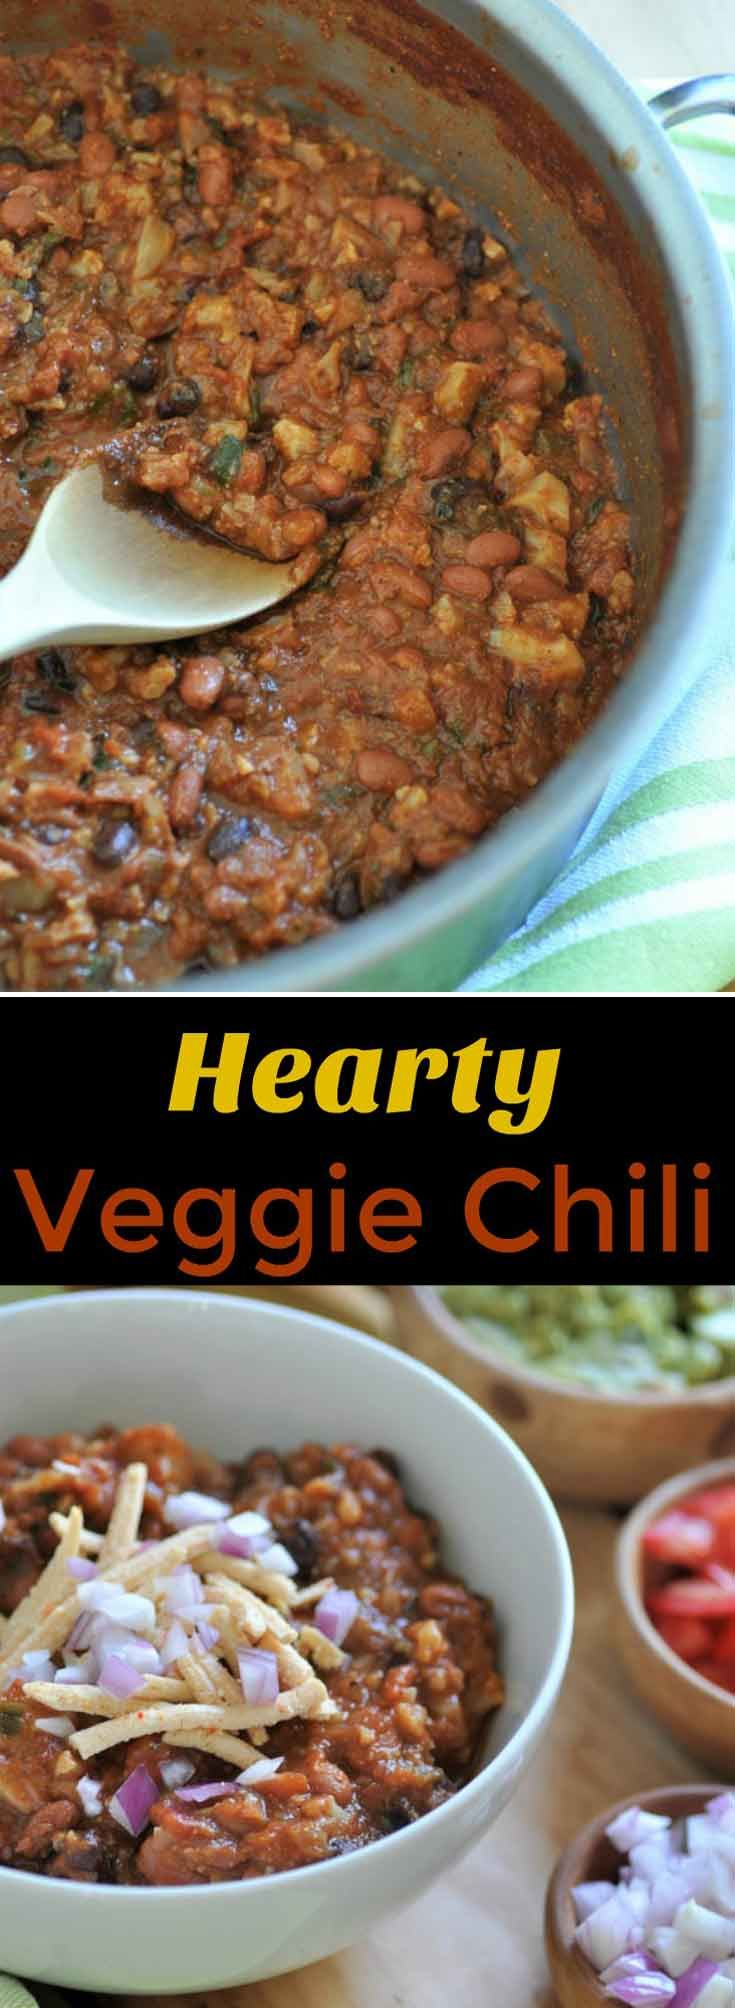 Hearty and meaty vegan chili that will satisfy mea…